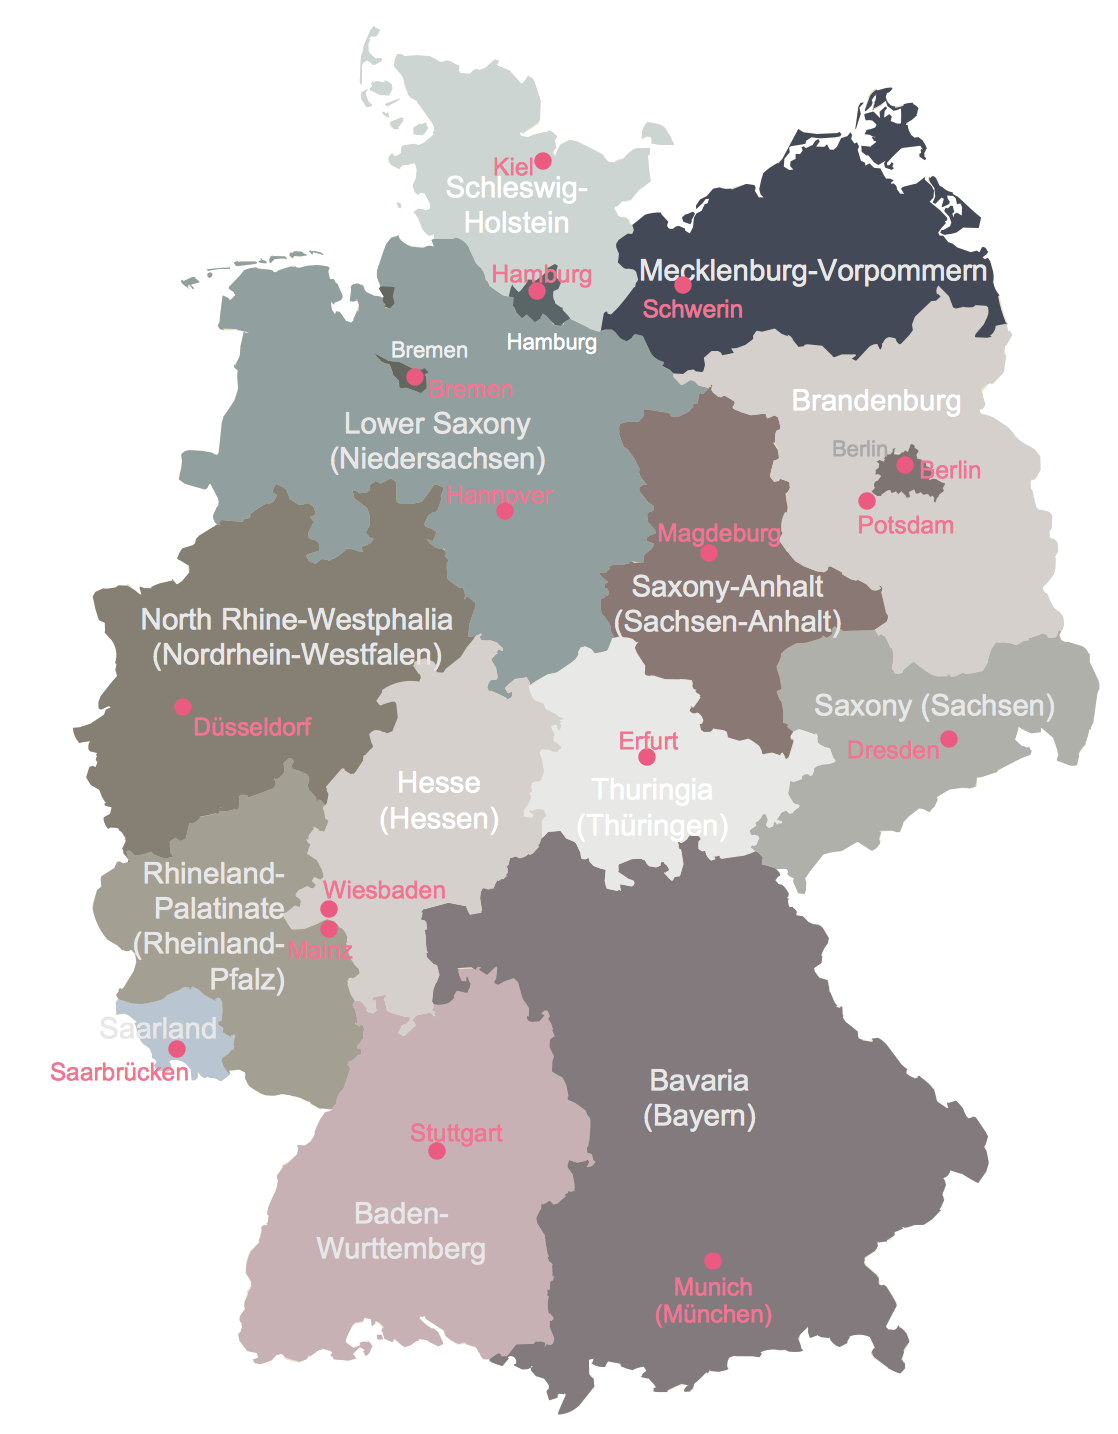 ConceptDraw Samples – A Map of Germany